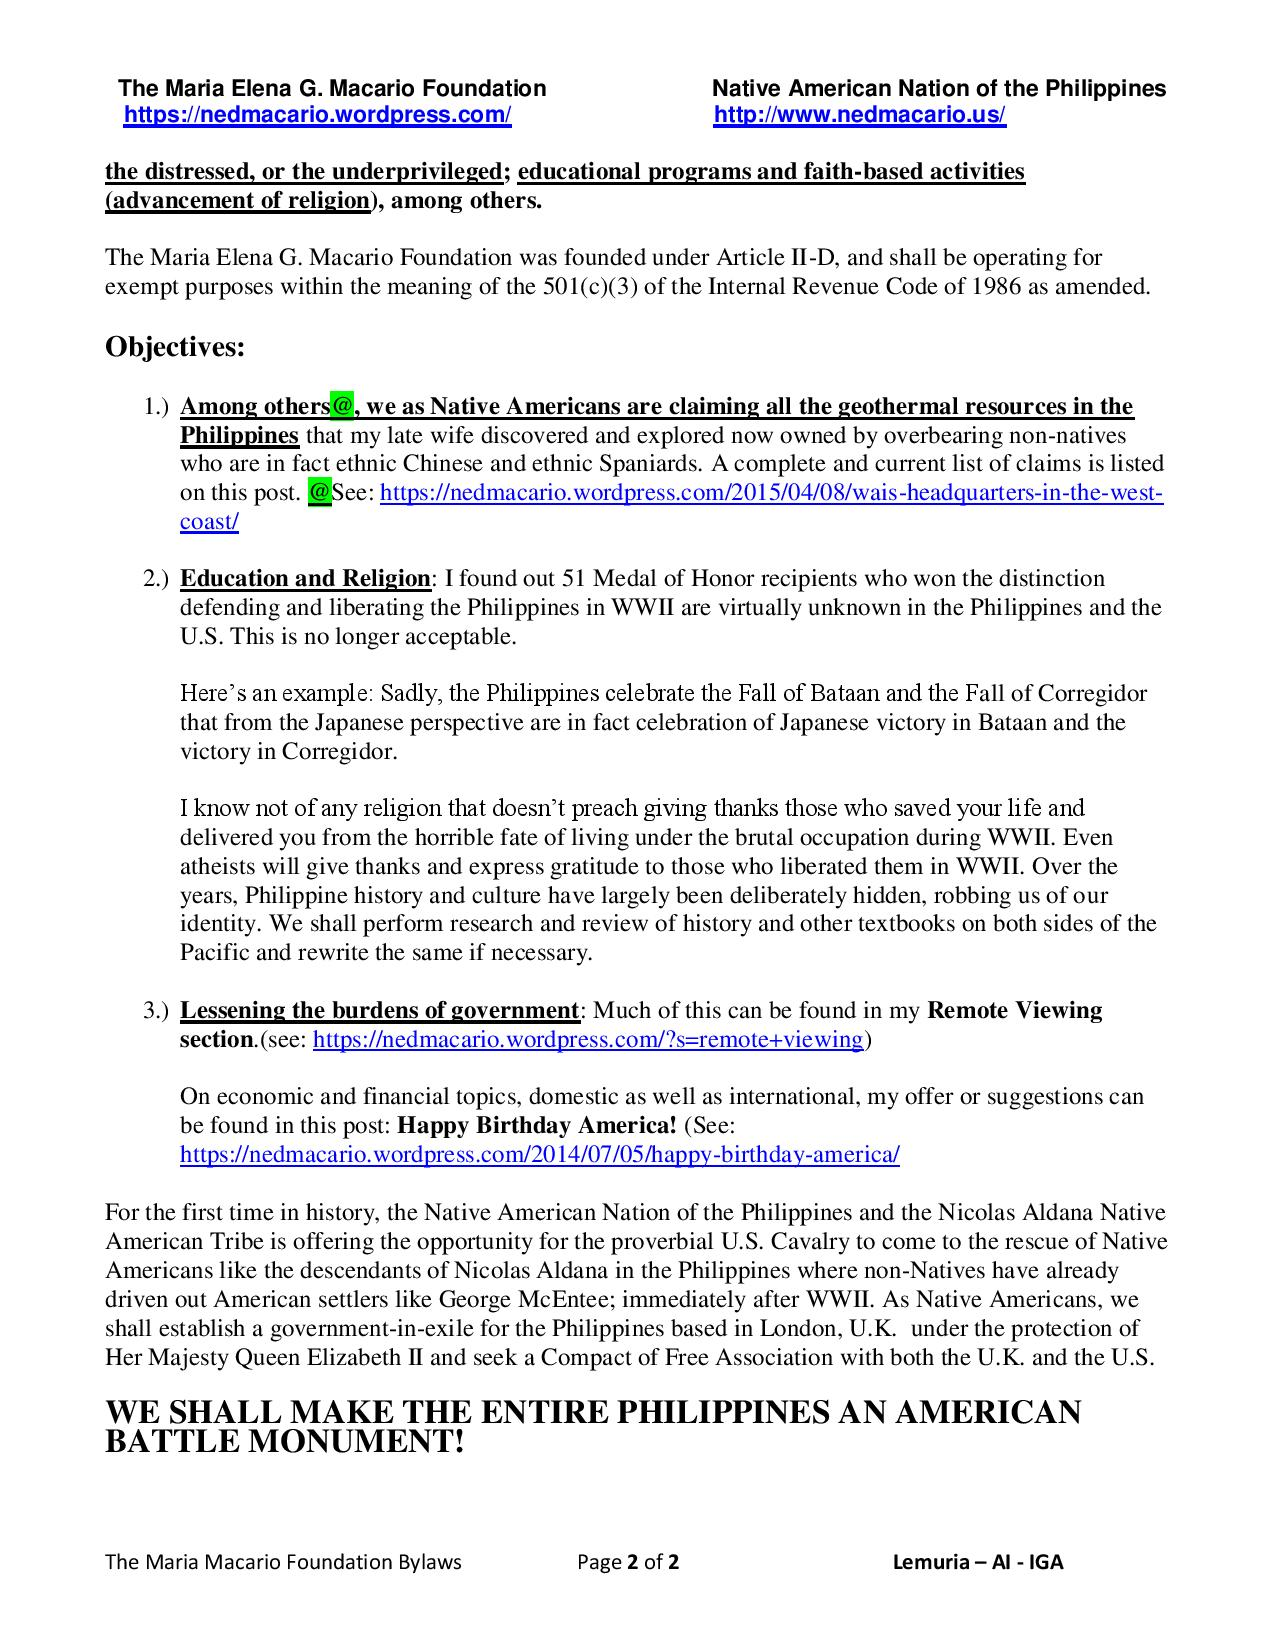 The Maria Macario Foundation Bylaws - 1st two pages - Macario Foundation v. 03-26-2017 p2